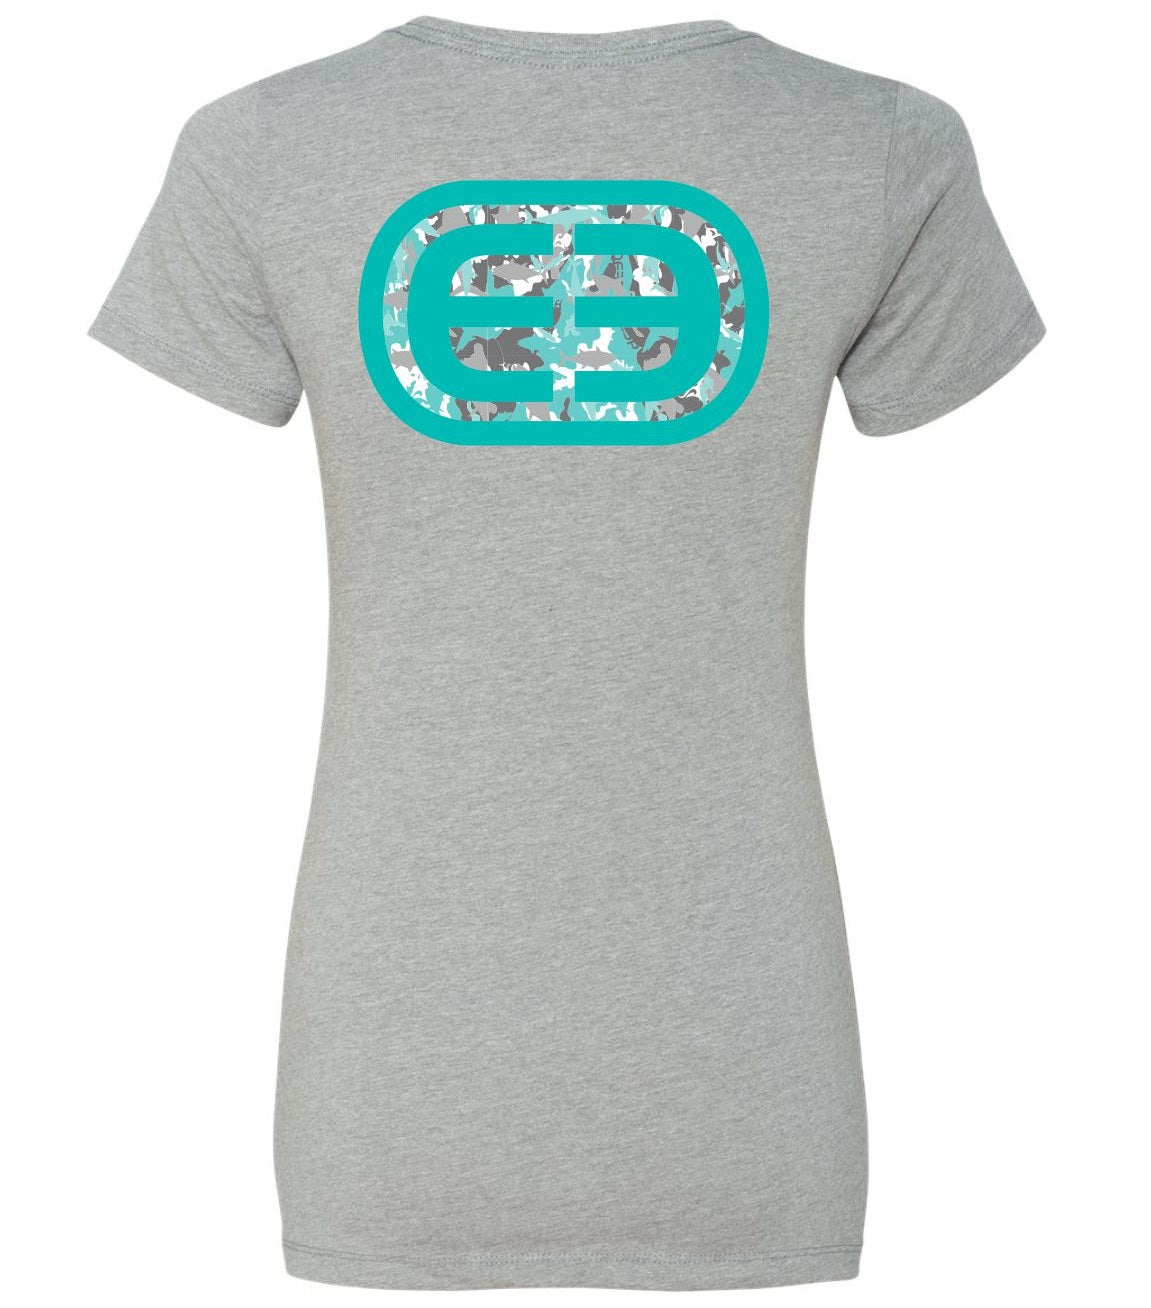 Women's Tee EE Camo Heather Grey/Teal